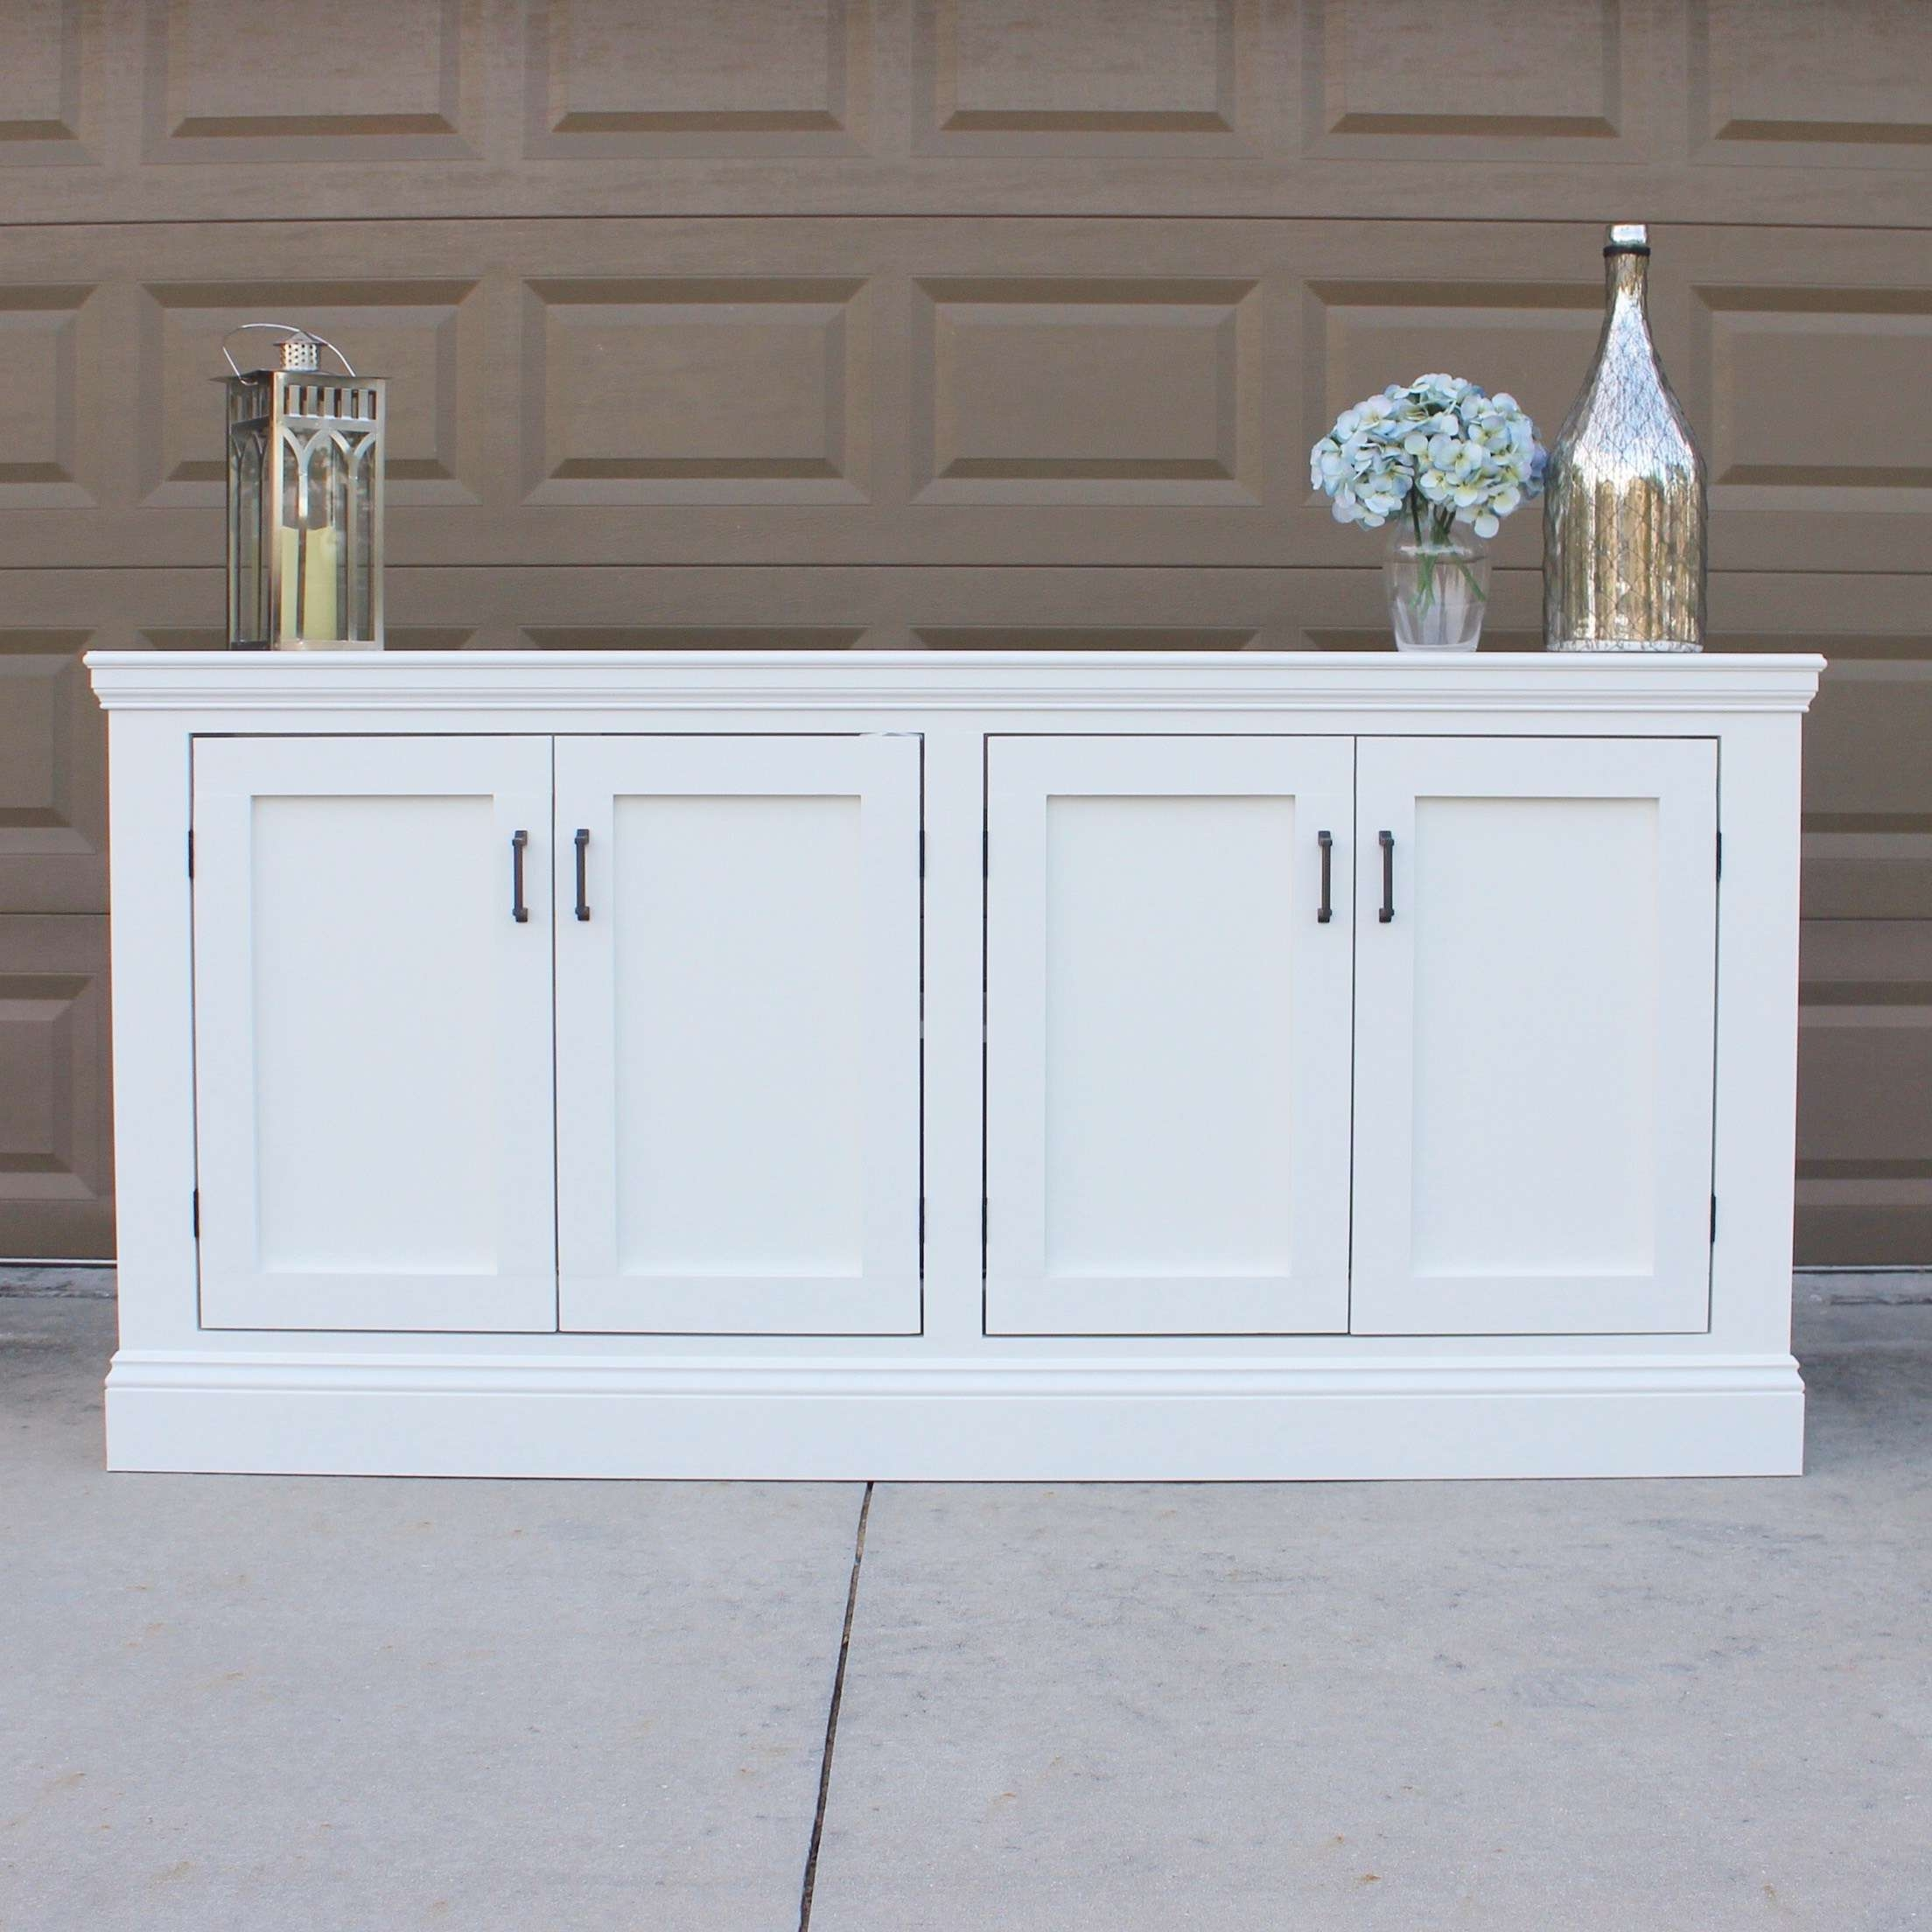 Beautiful Restoration Hardware Sideboard – Bjdgjy With Diy Sideboards (View 7 of 20)